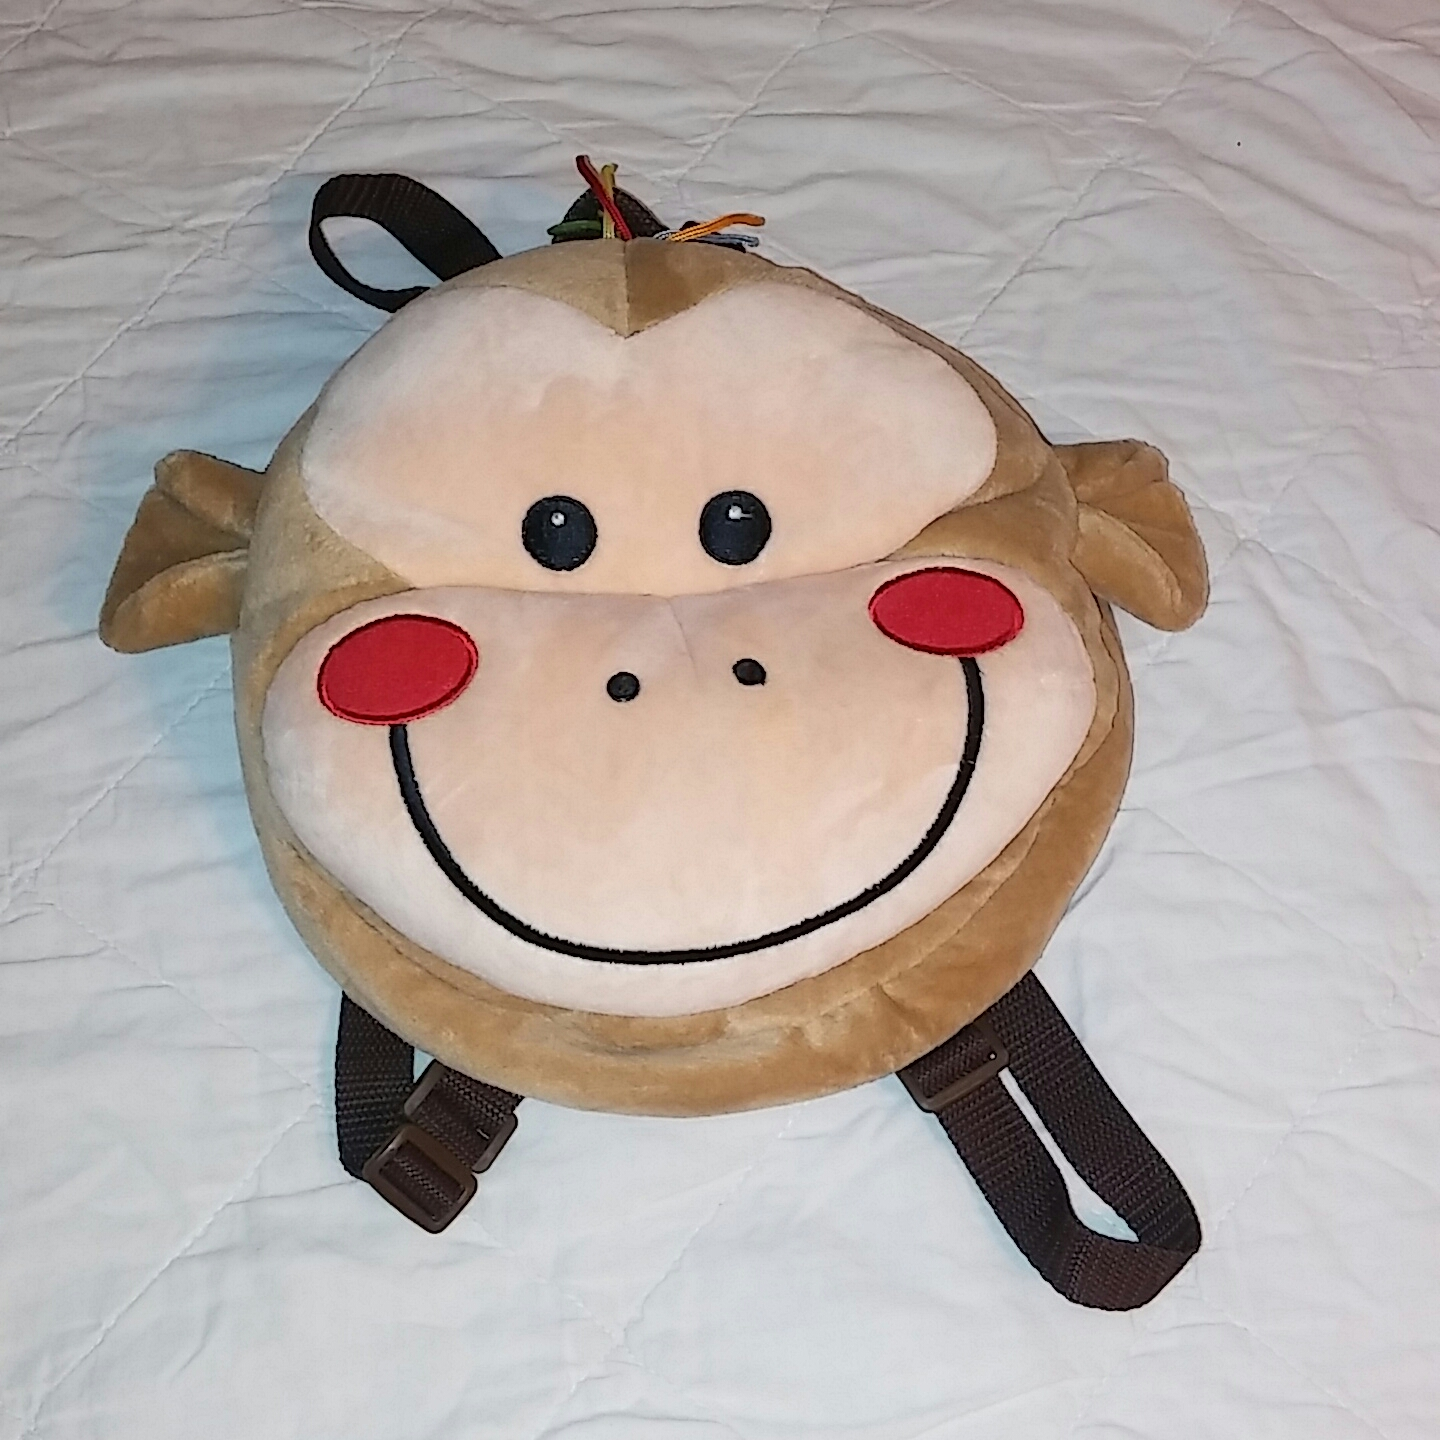 Product Image 1 - The cutest little kid's 🐵